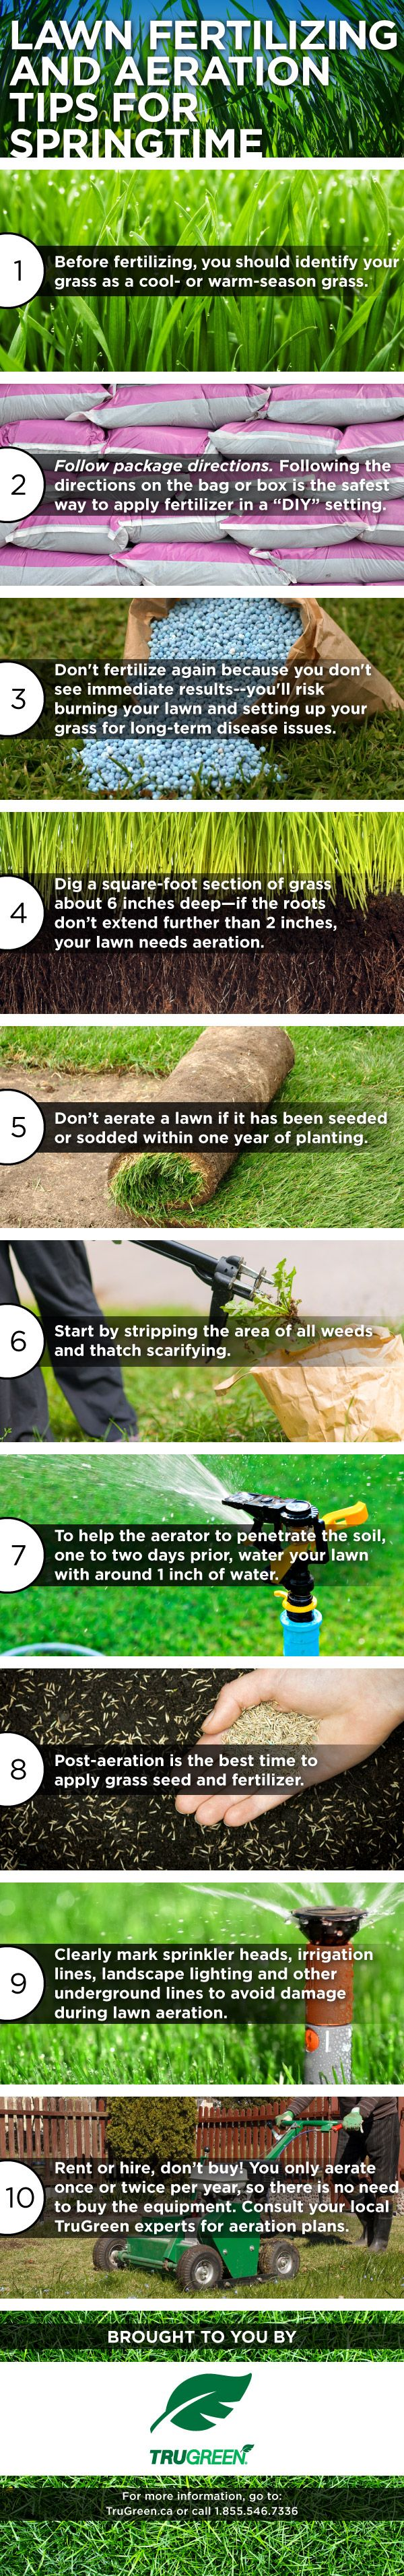 Best way to plant grass seed - Lawn Fertilizing And Aeration Tips For Springtime Try These Simple Lawn Fertilizing And Aeration Tips